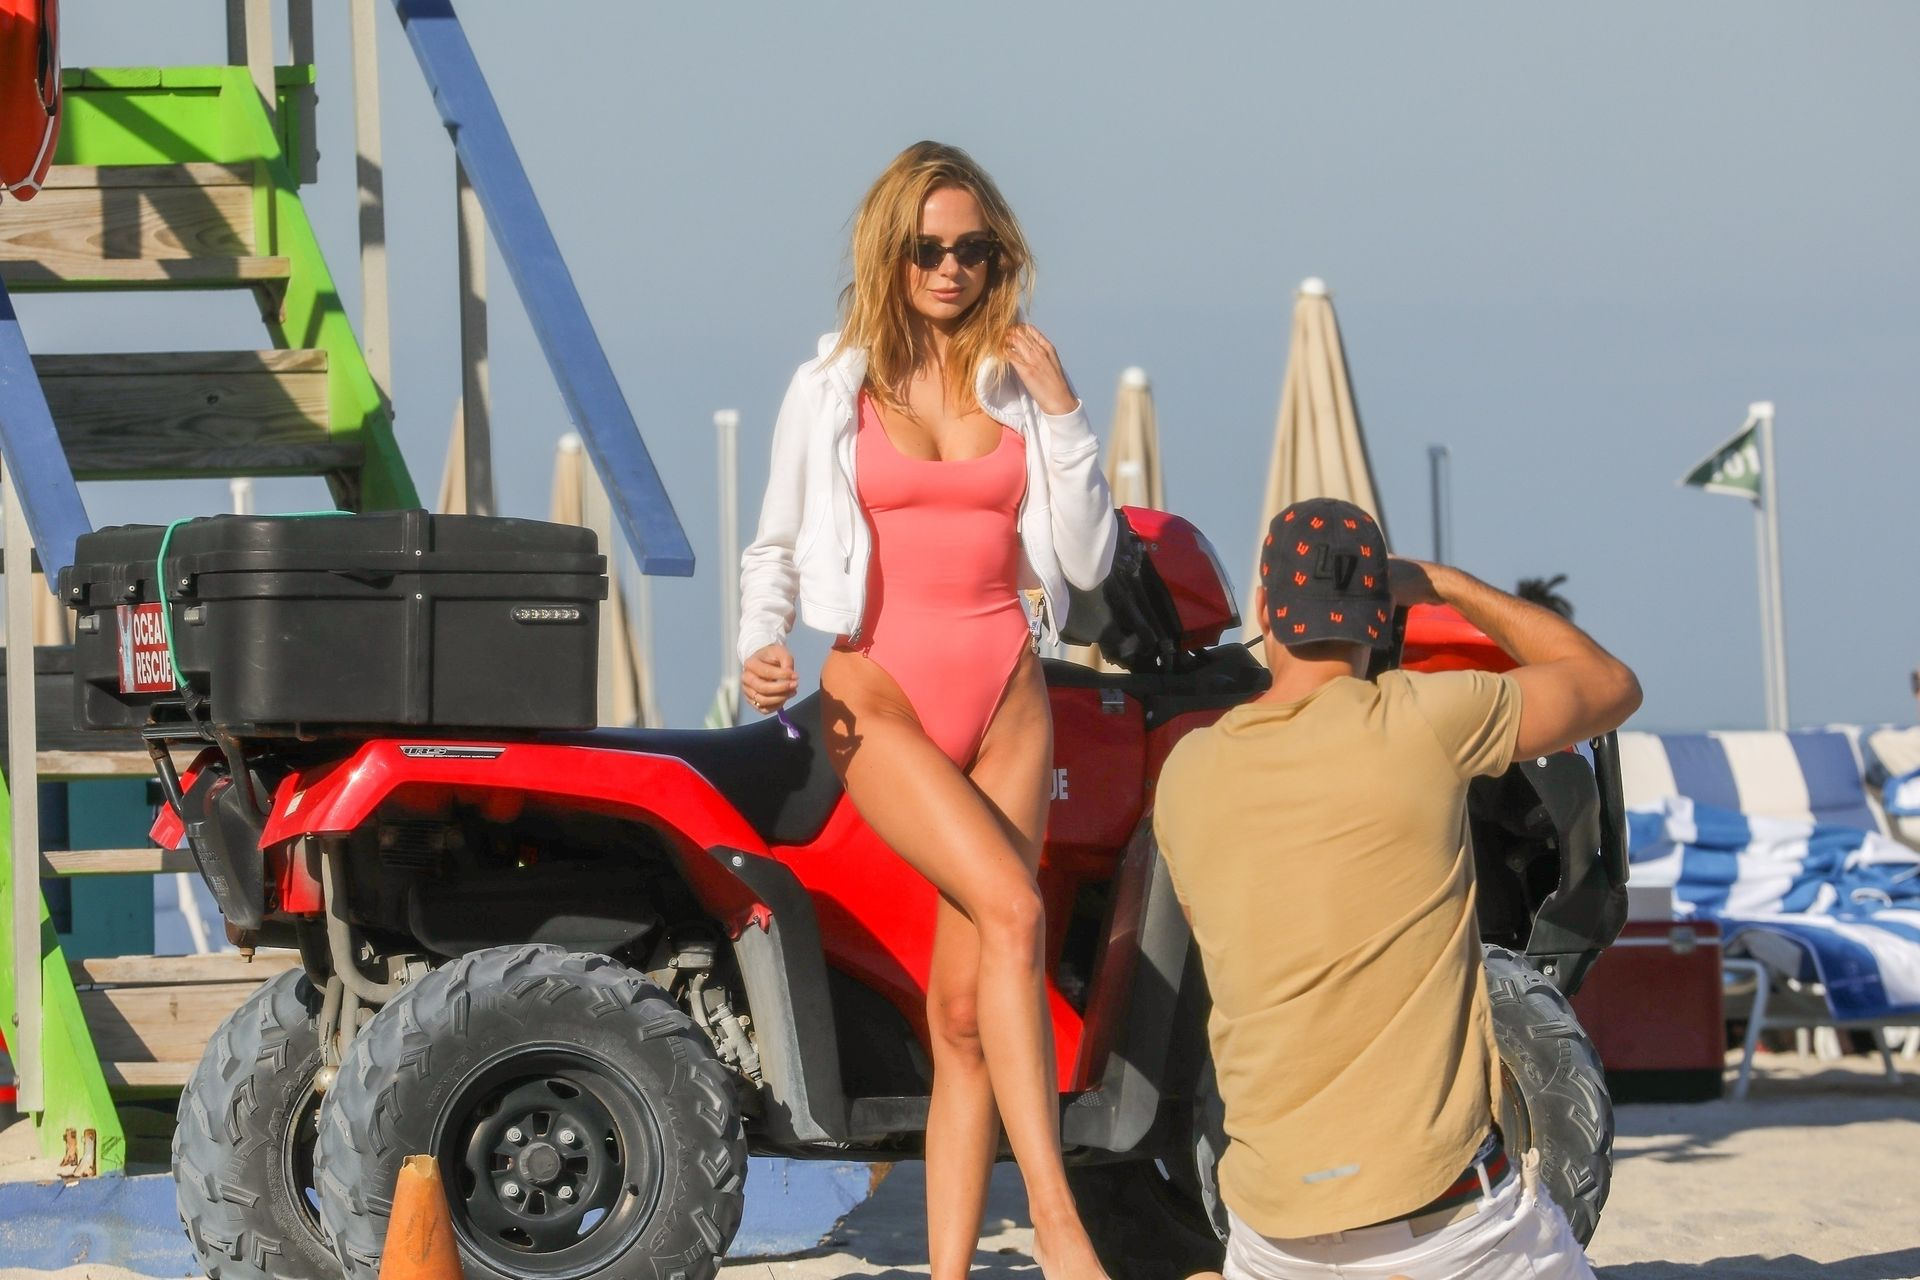 Kimberley Garner Poses In Sexy Ocean Rescue Themed Photoshoot 0004